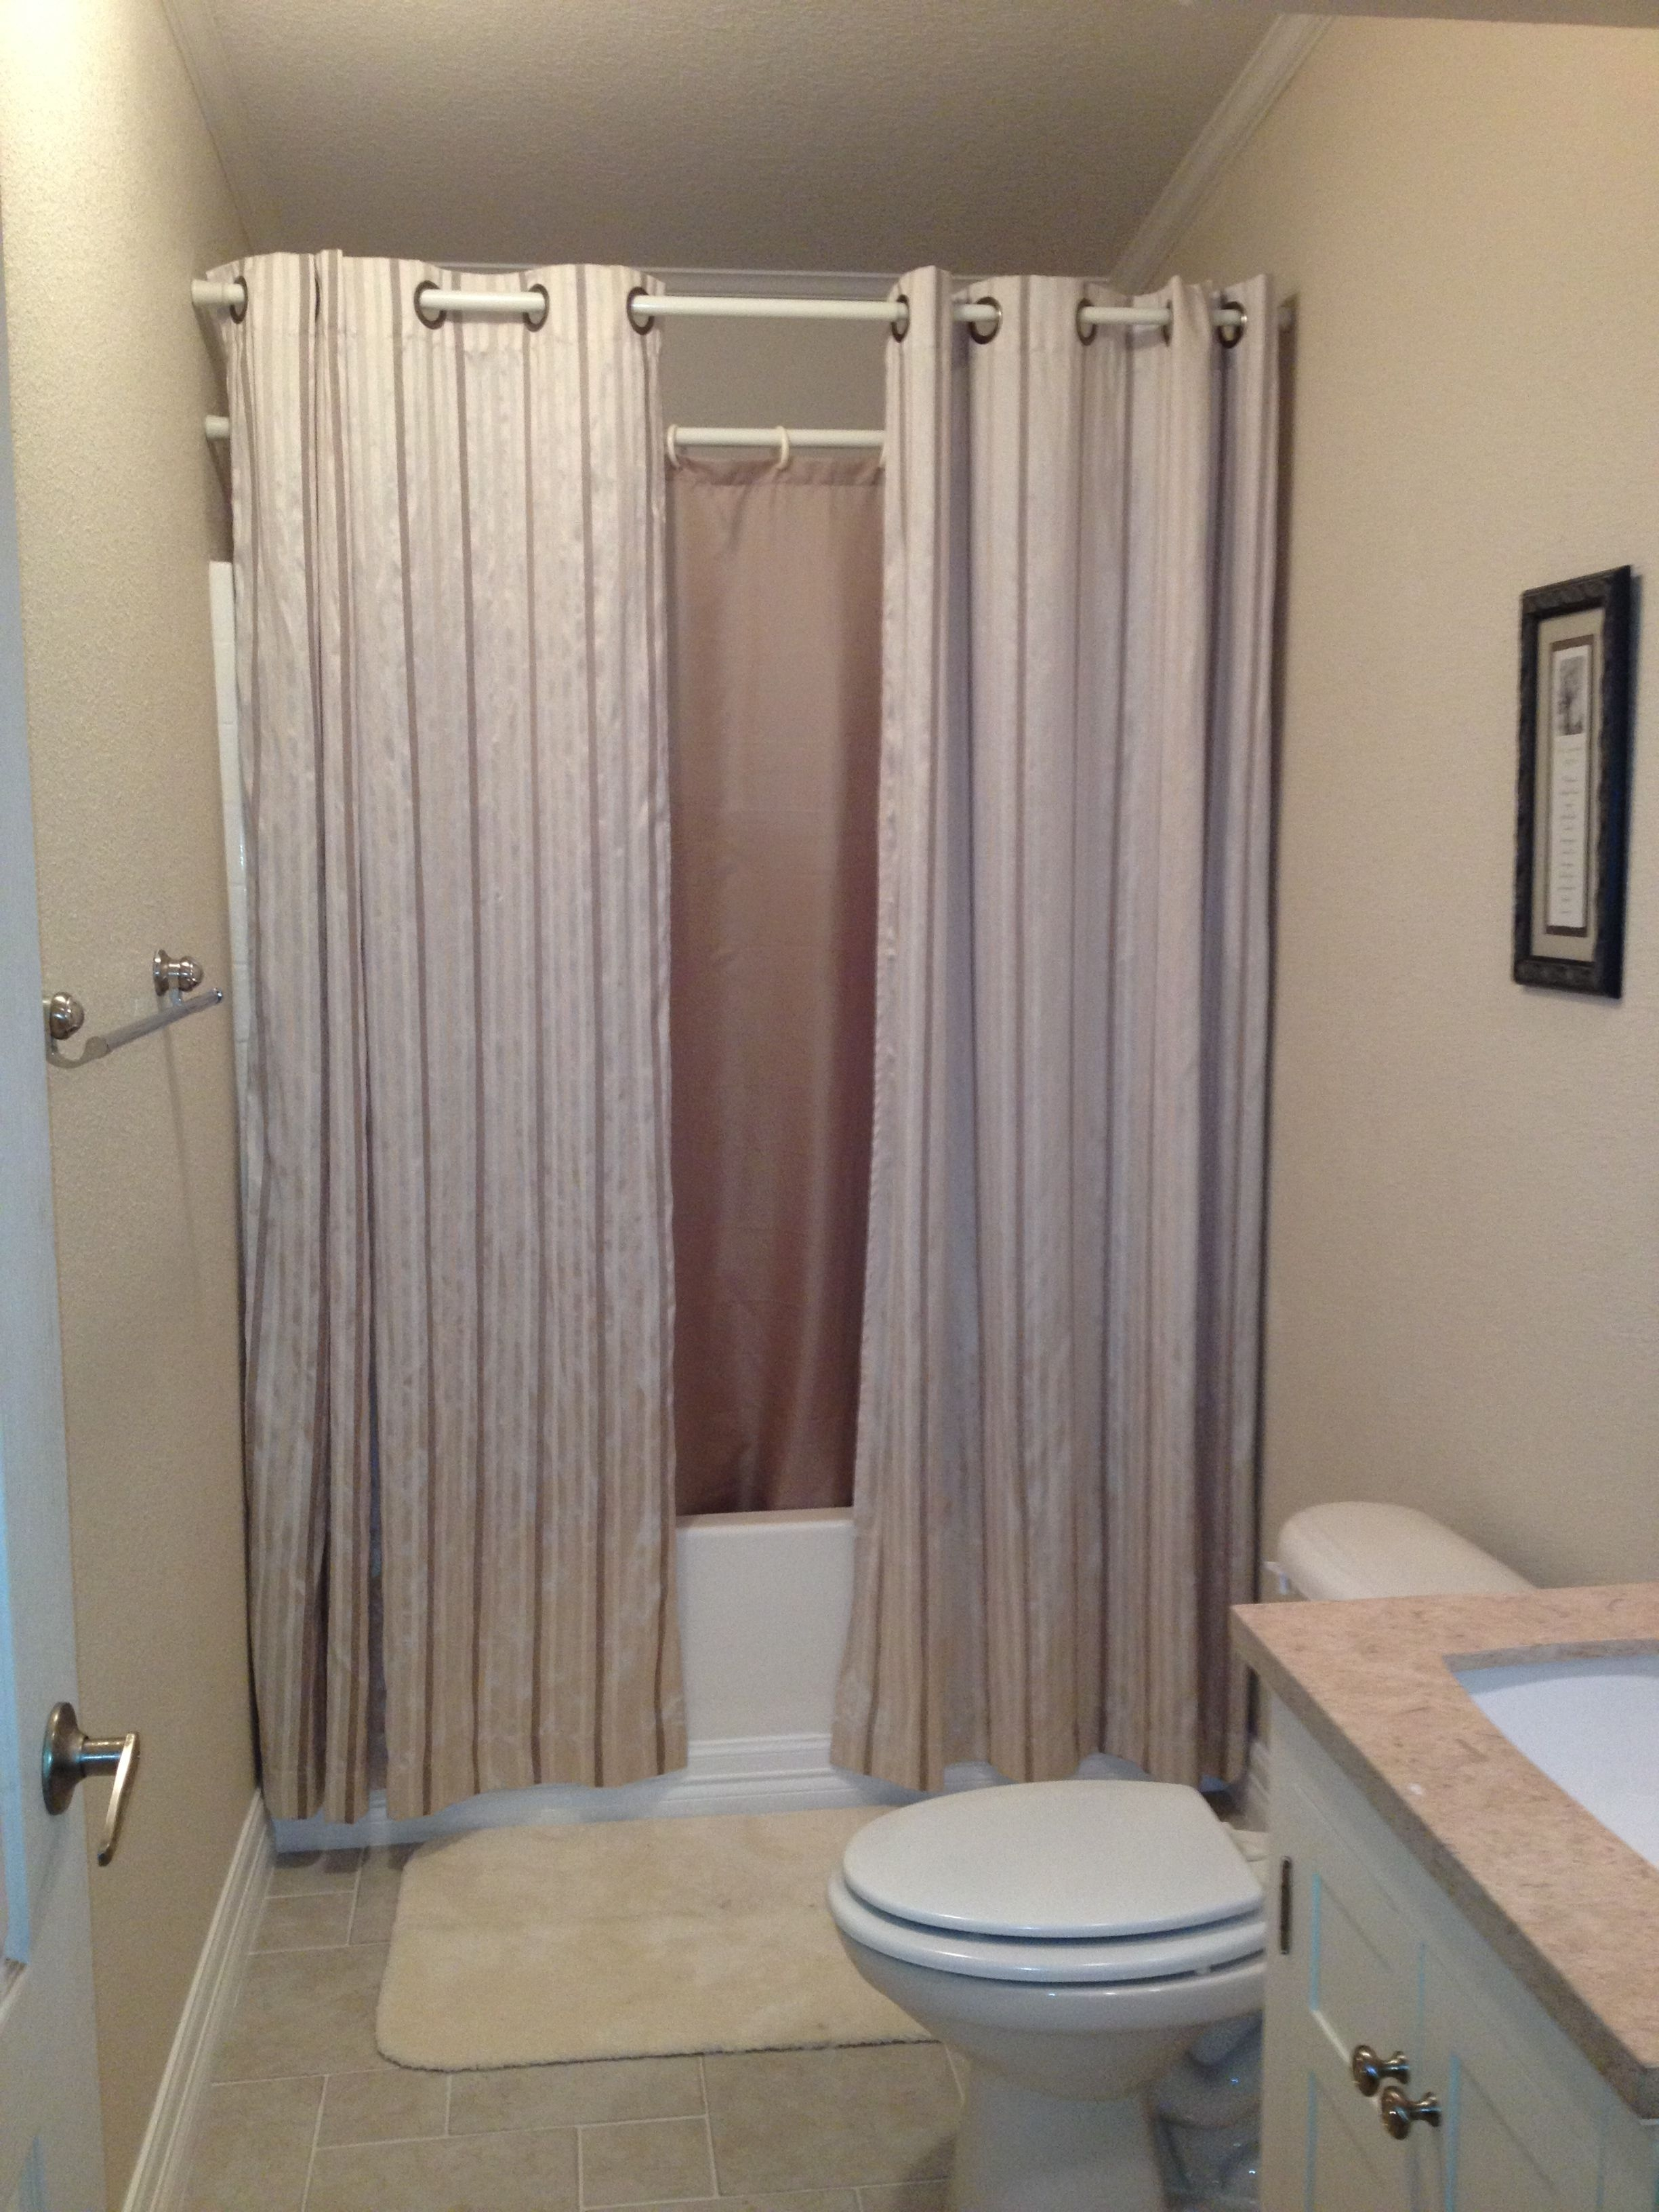 Small Bathroom Shower Curtain Or Glass Door Opnodes